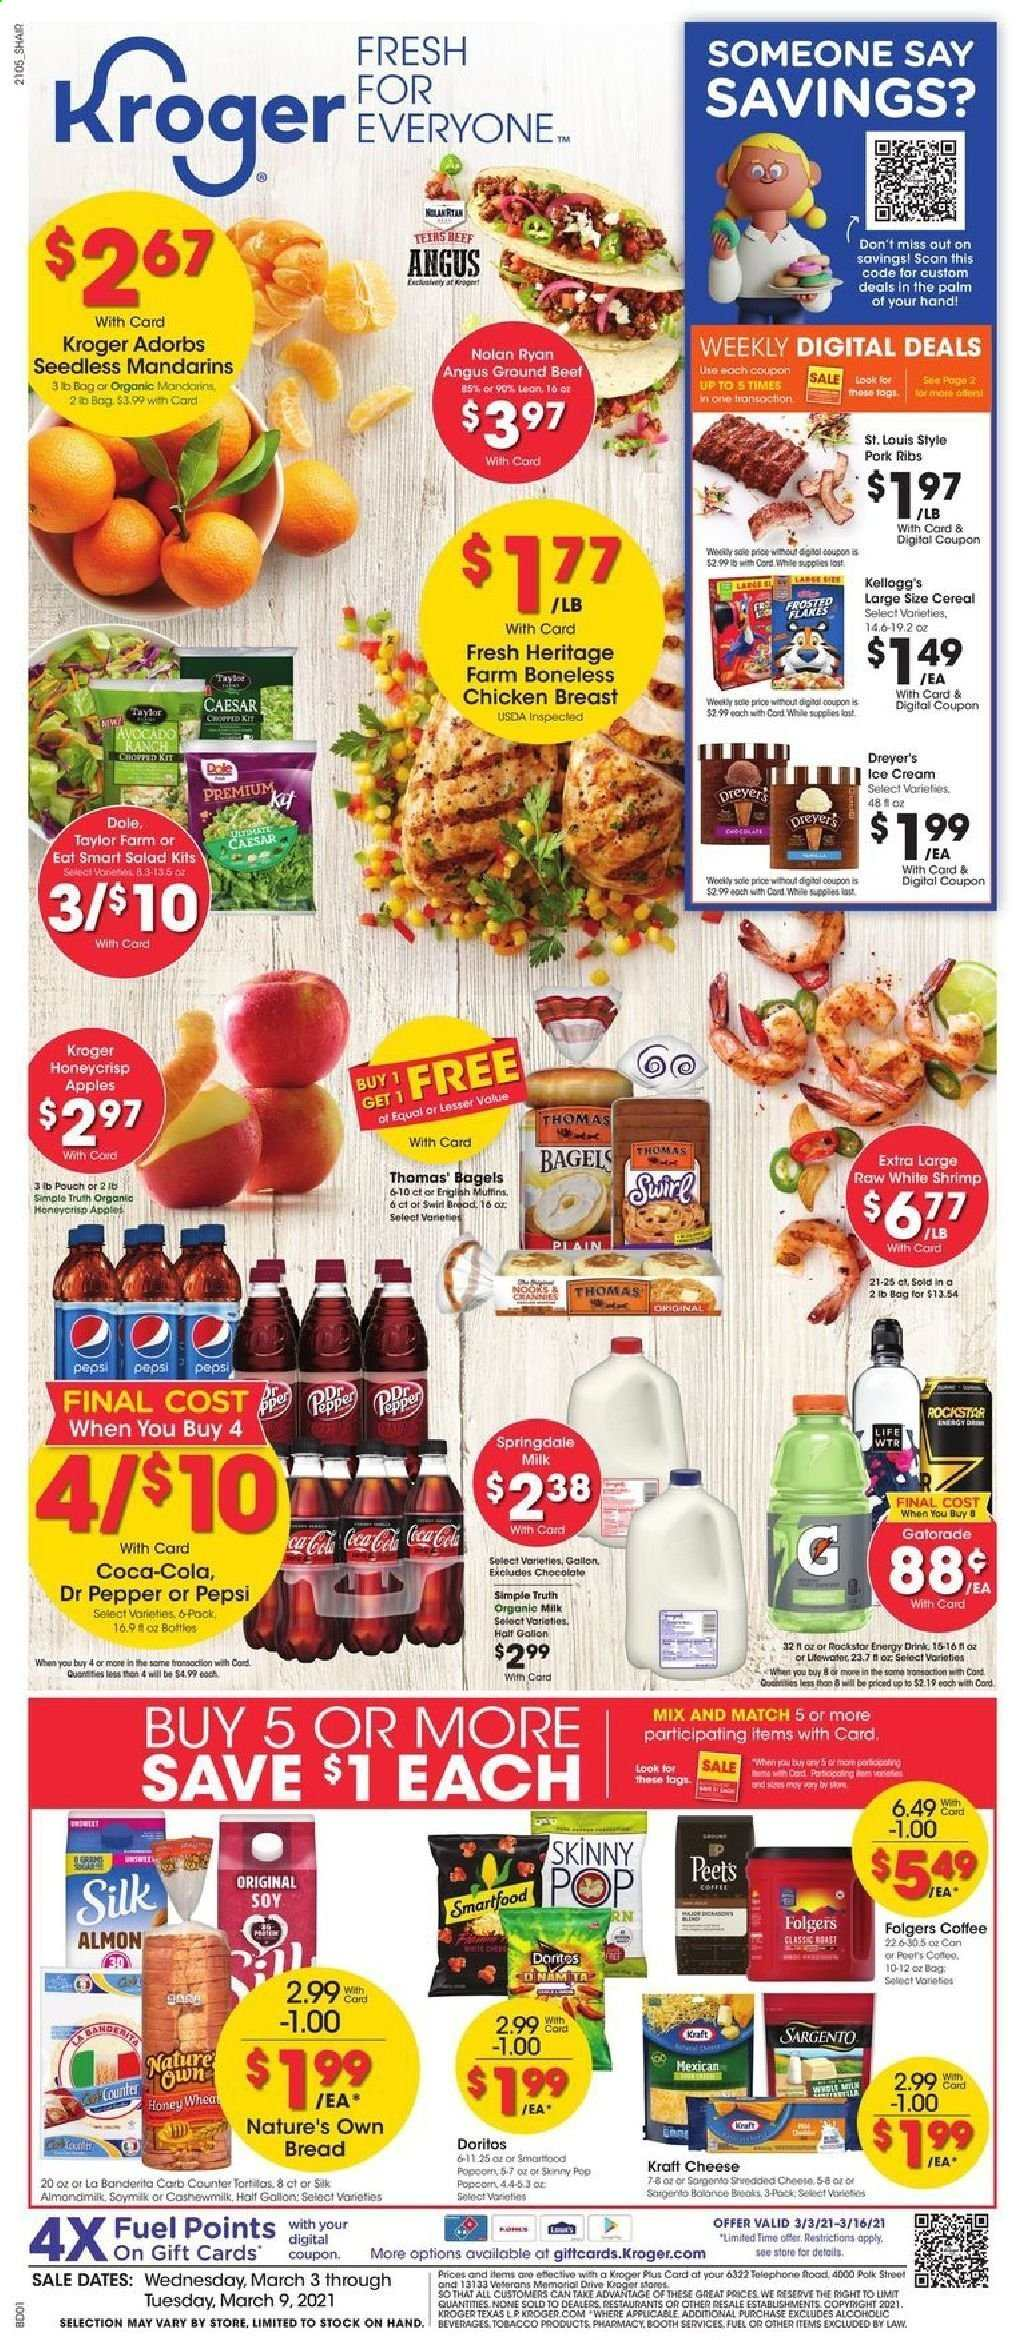 Kroger Flyer - 03.03.2021 - 03.09.2021 - Sales products - gallon, Dole, bread, tortillas, bagels, muffin, apples, shrimps, salad, Kraft®, cheese, Sargento, milk, soy milk, Silk, ice cream, Doritos, Smartfood, Skinny Pop, mandarines, cereals, Coca-Cola, Pepsi, energy drink, Dr. Pepper, Rockstar, Gatorade, coffee, Folgers, L'Or, chicken, chicken breasts, chicken meat, beef meat, ground beef, pork meat, pork ribs, Nature's Own. Page 1.